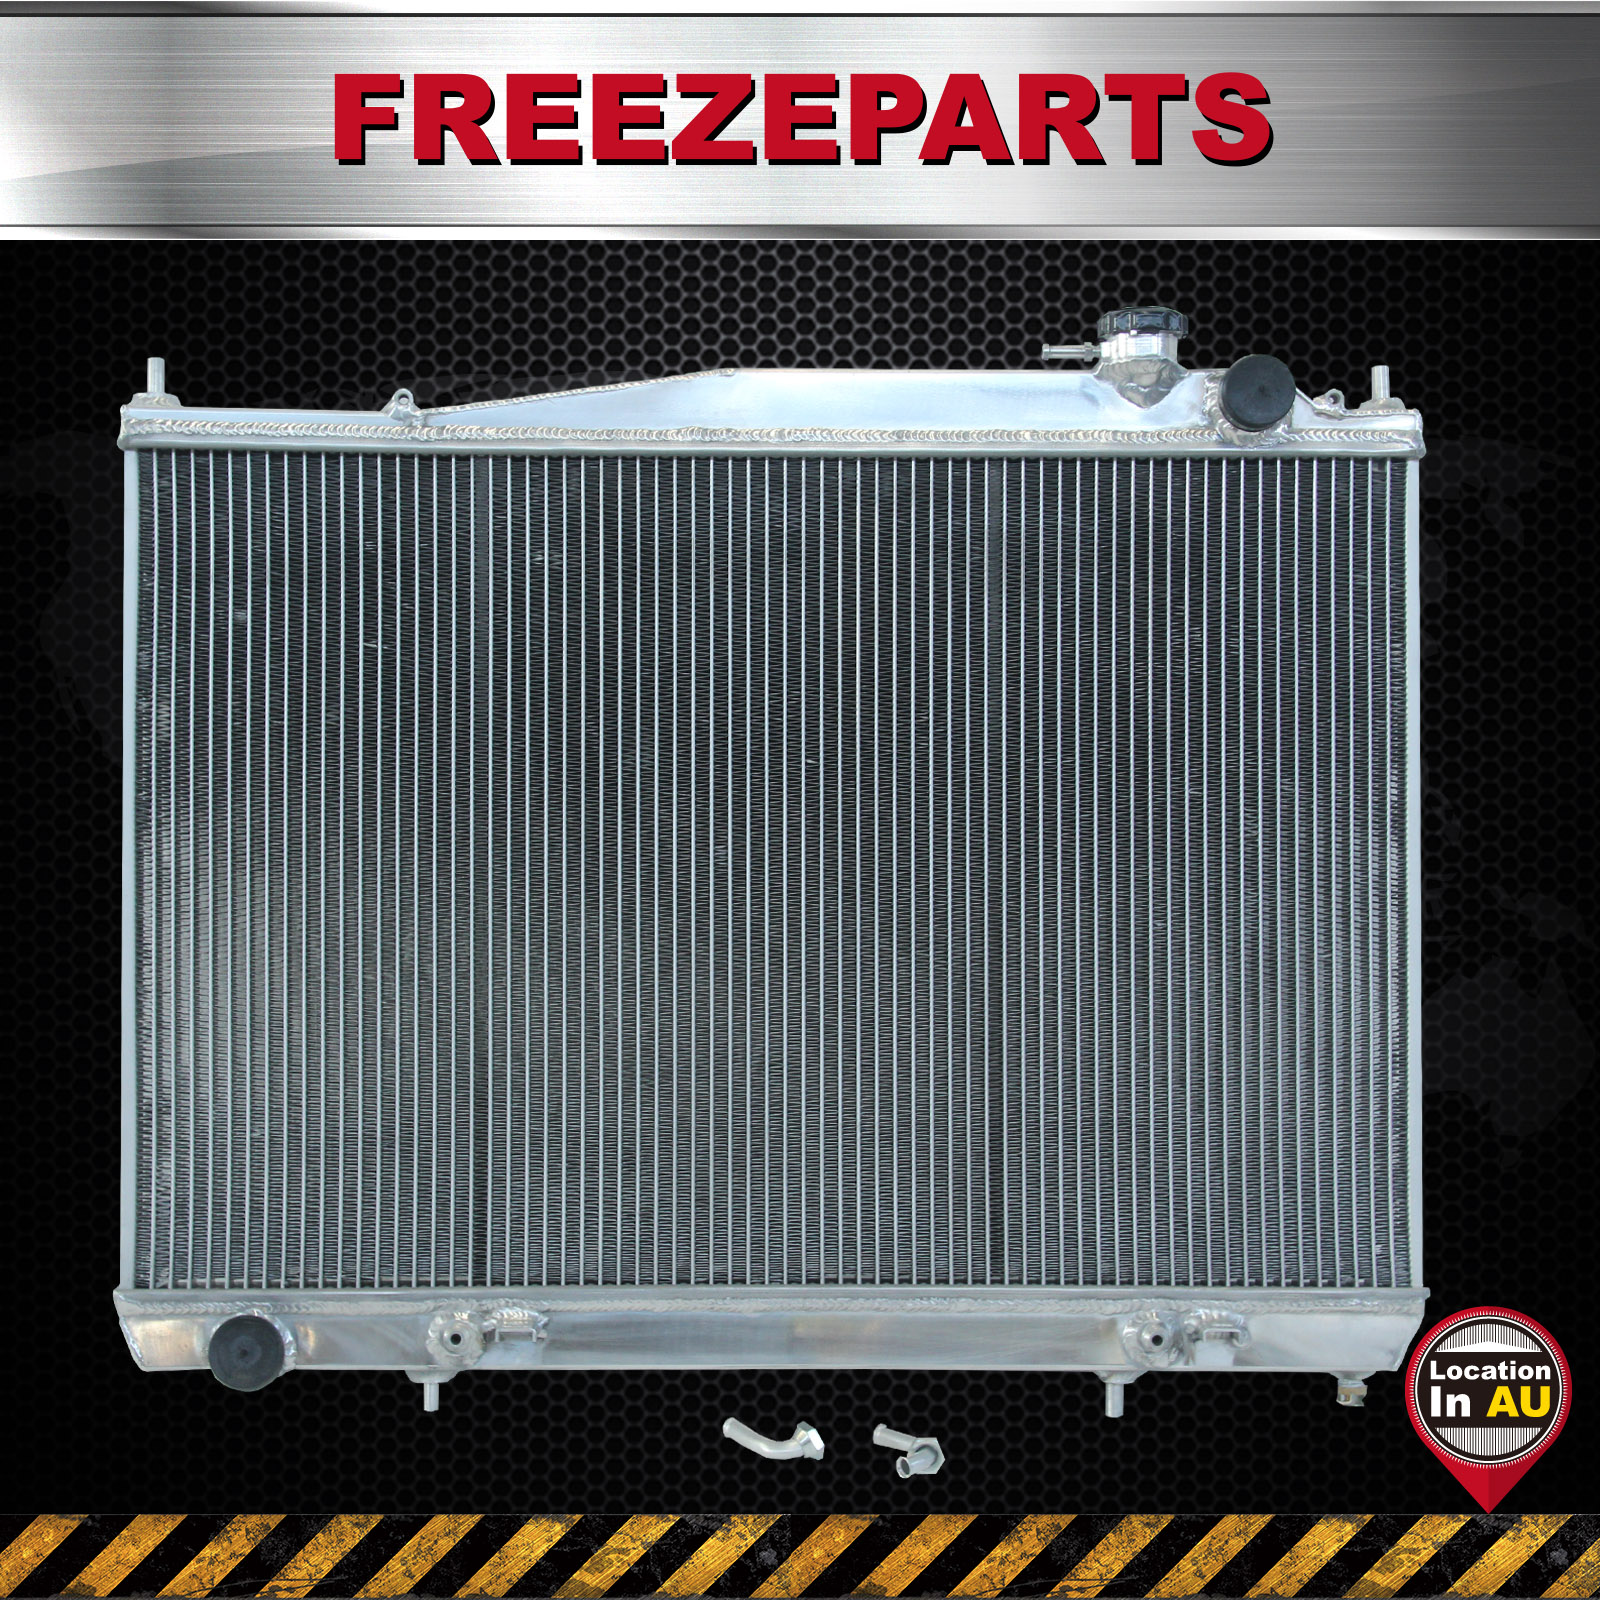 hight resolution of details about for nissan navara d22 r50 2 5l 3 0l diesel aluminum radiator 1997 2001 at mt sl